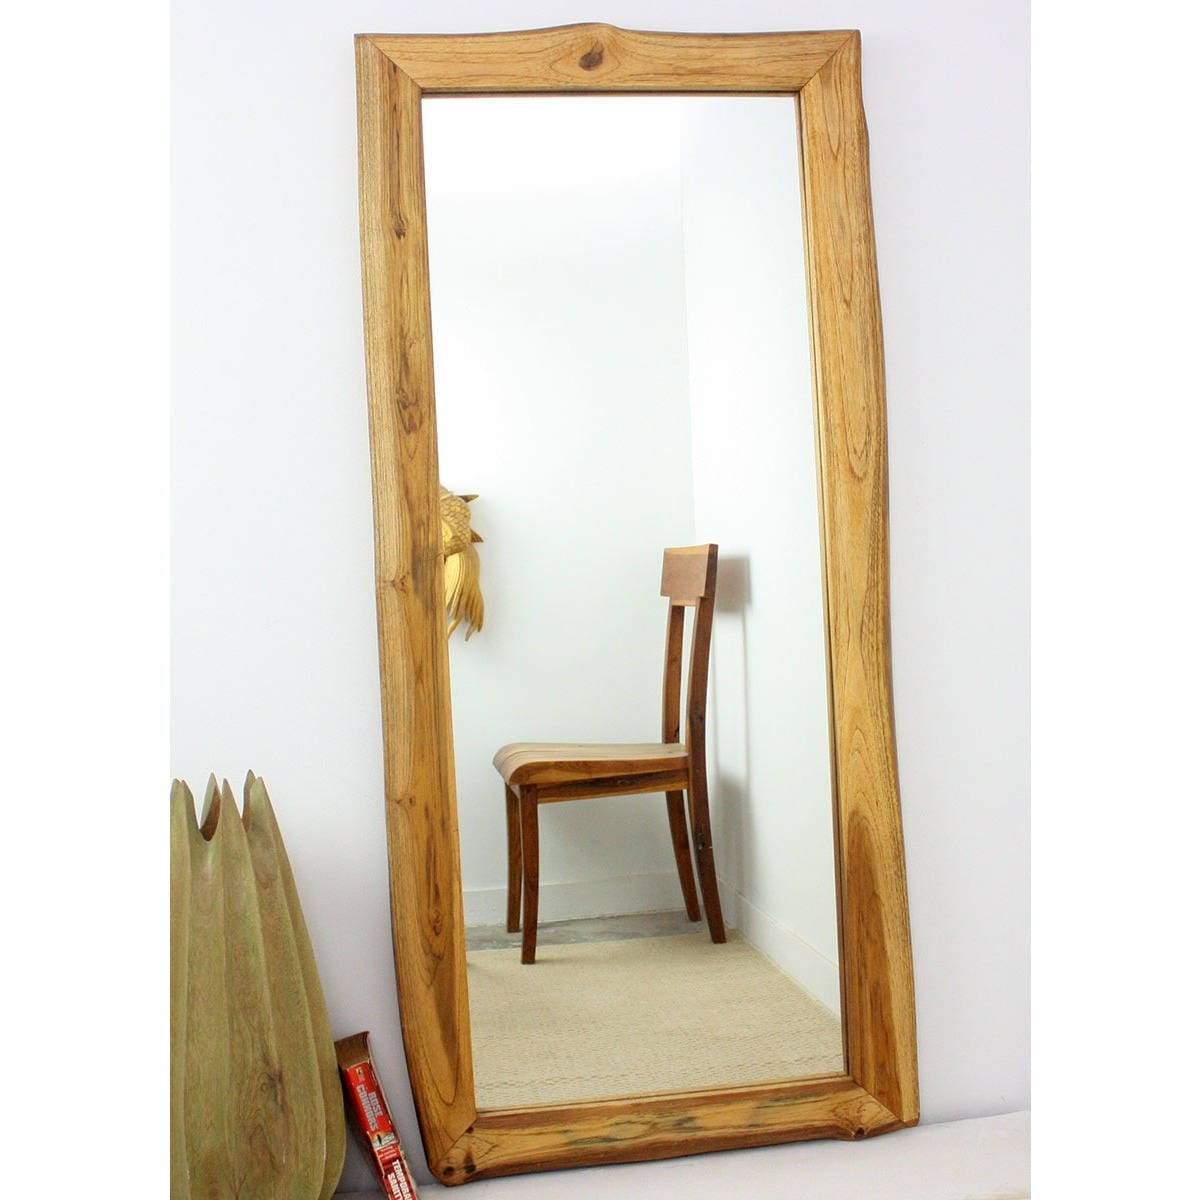 Wood Full Length Mirror Cheaper Than Retail Price Buy Clothing Accessories And Lifestyle Products For Women Men